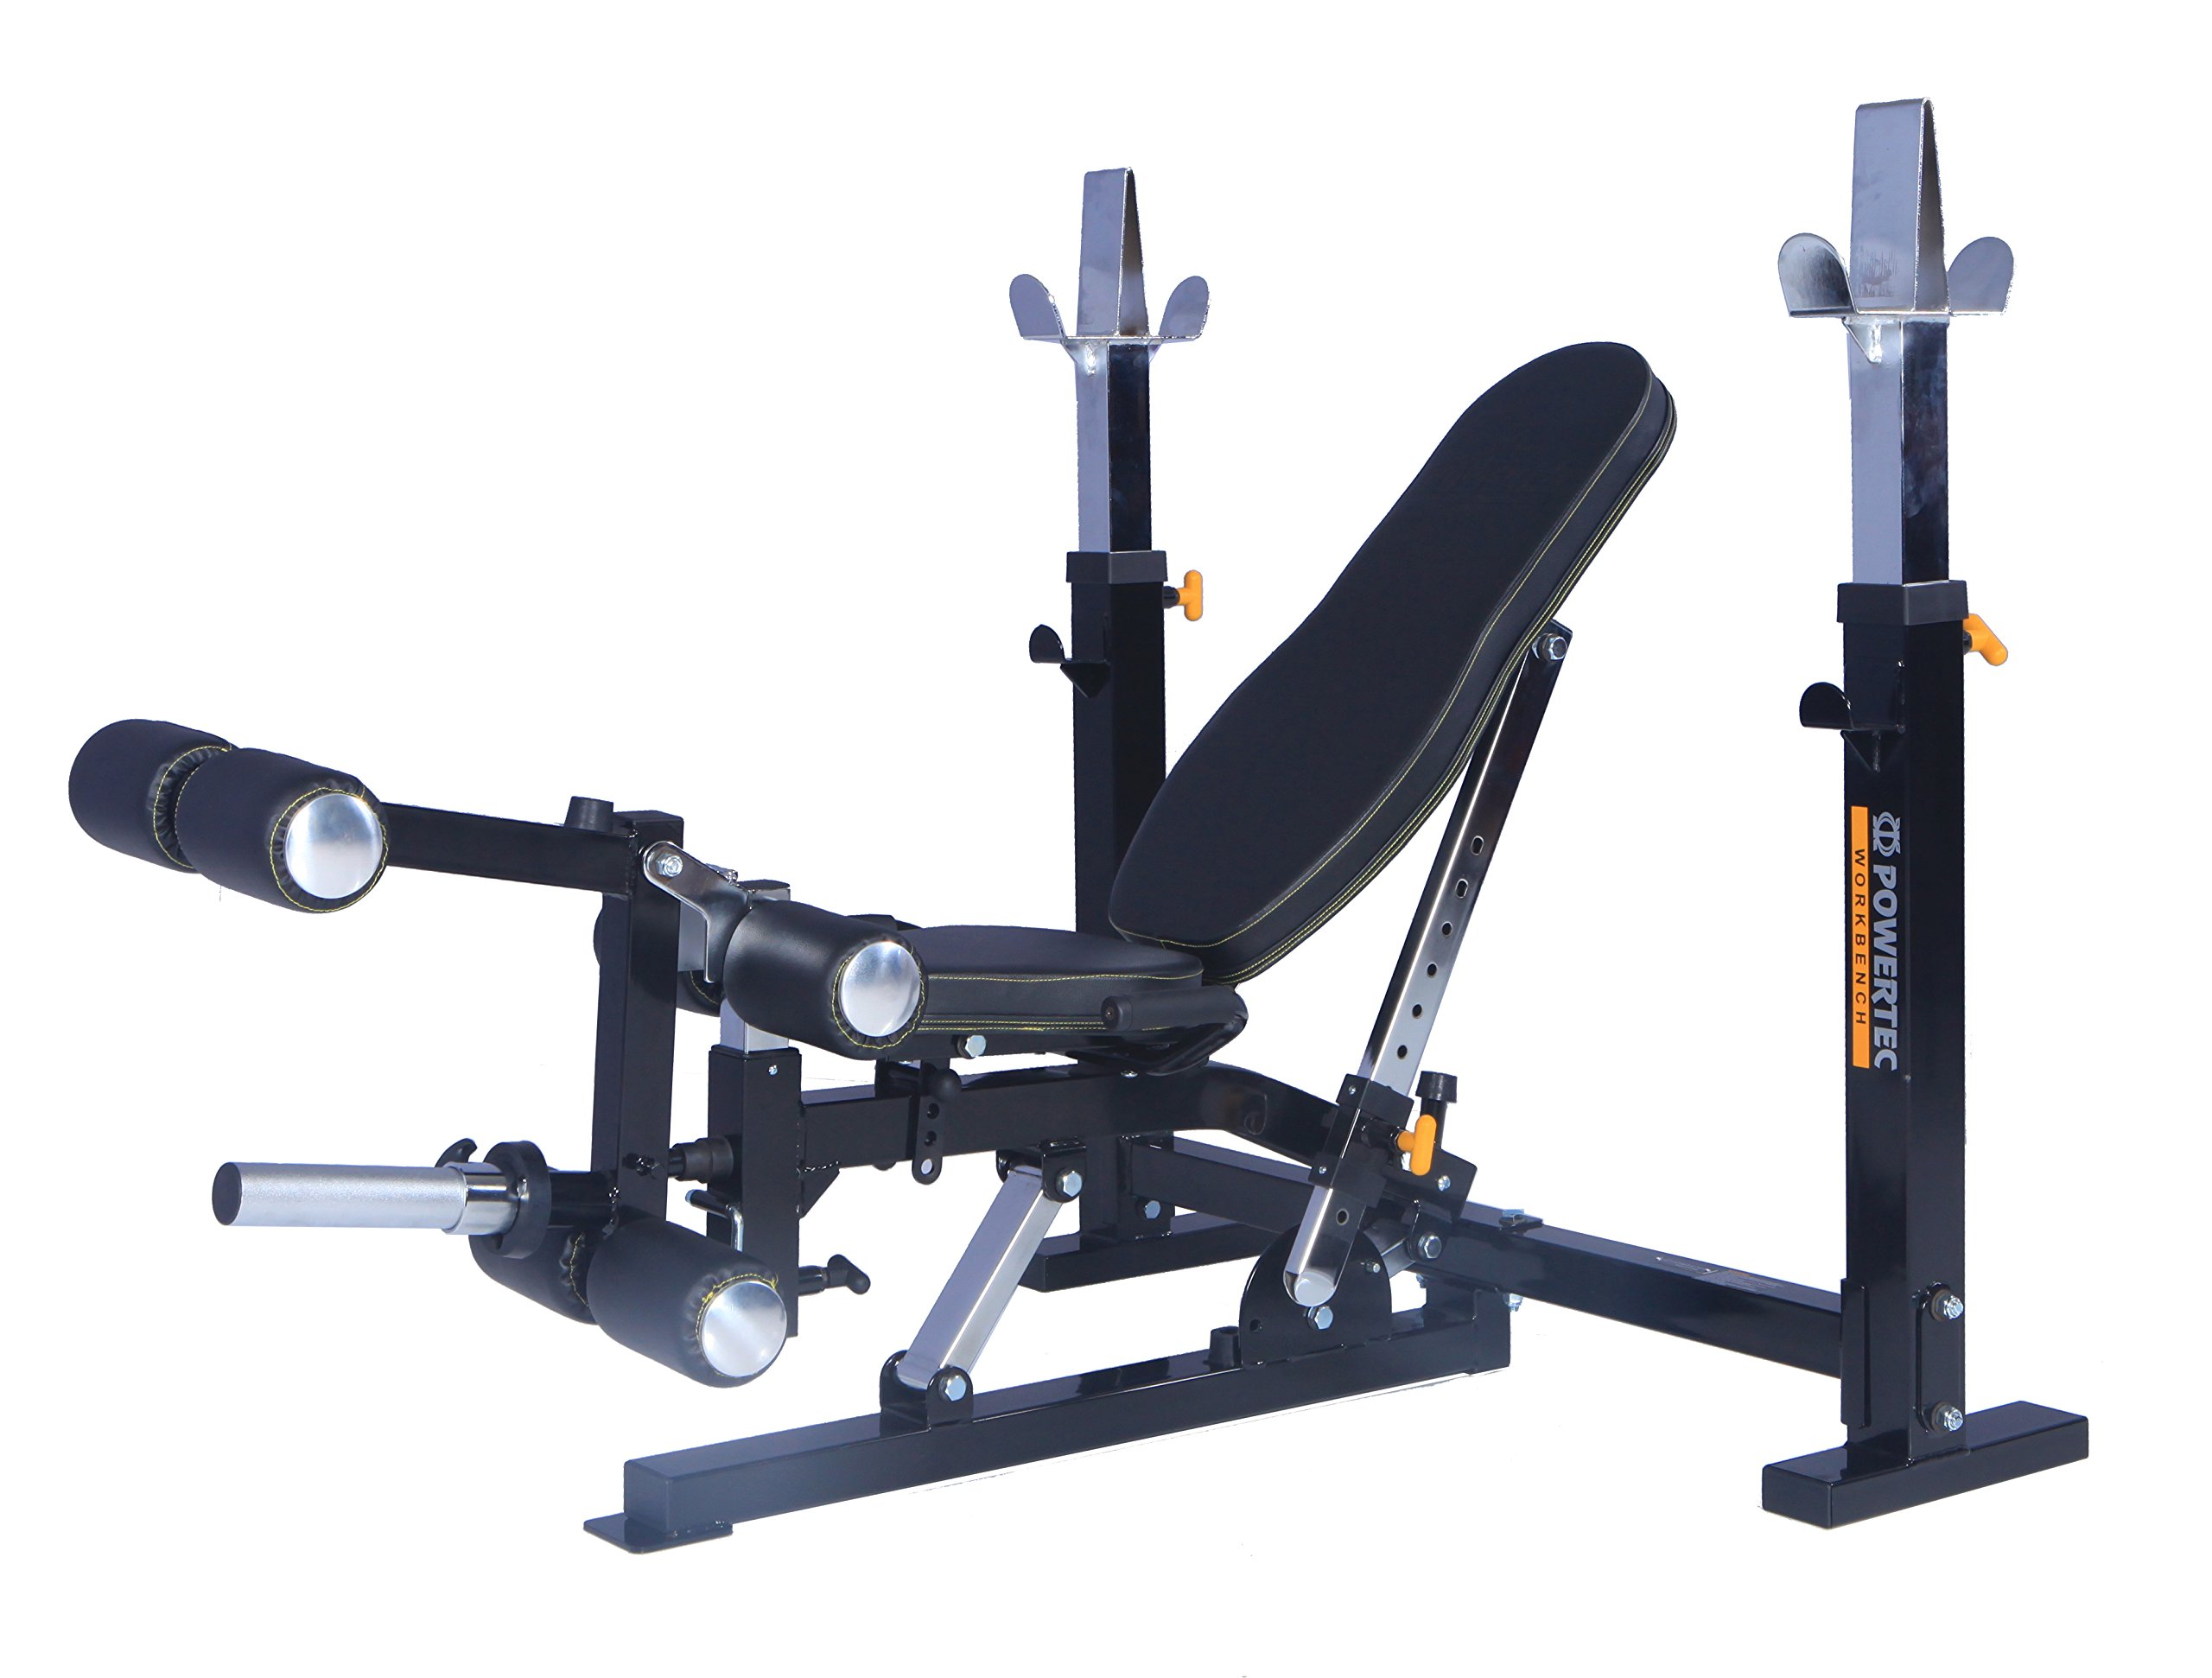 Powertec Workbench Olympic Bench (WB-OB15) + Leg Lift Accessory (WB-LLA16) by Powertec Fitness